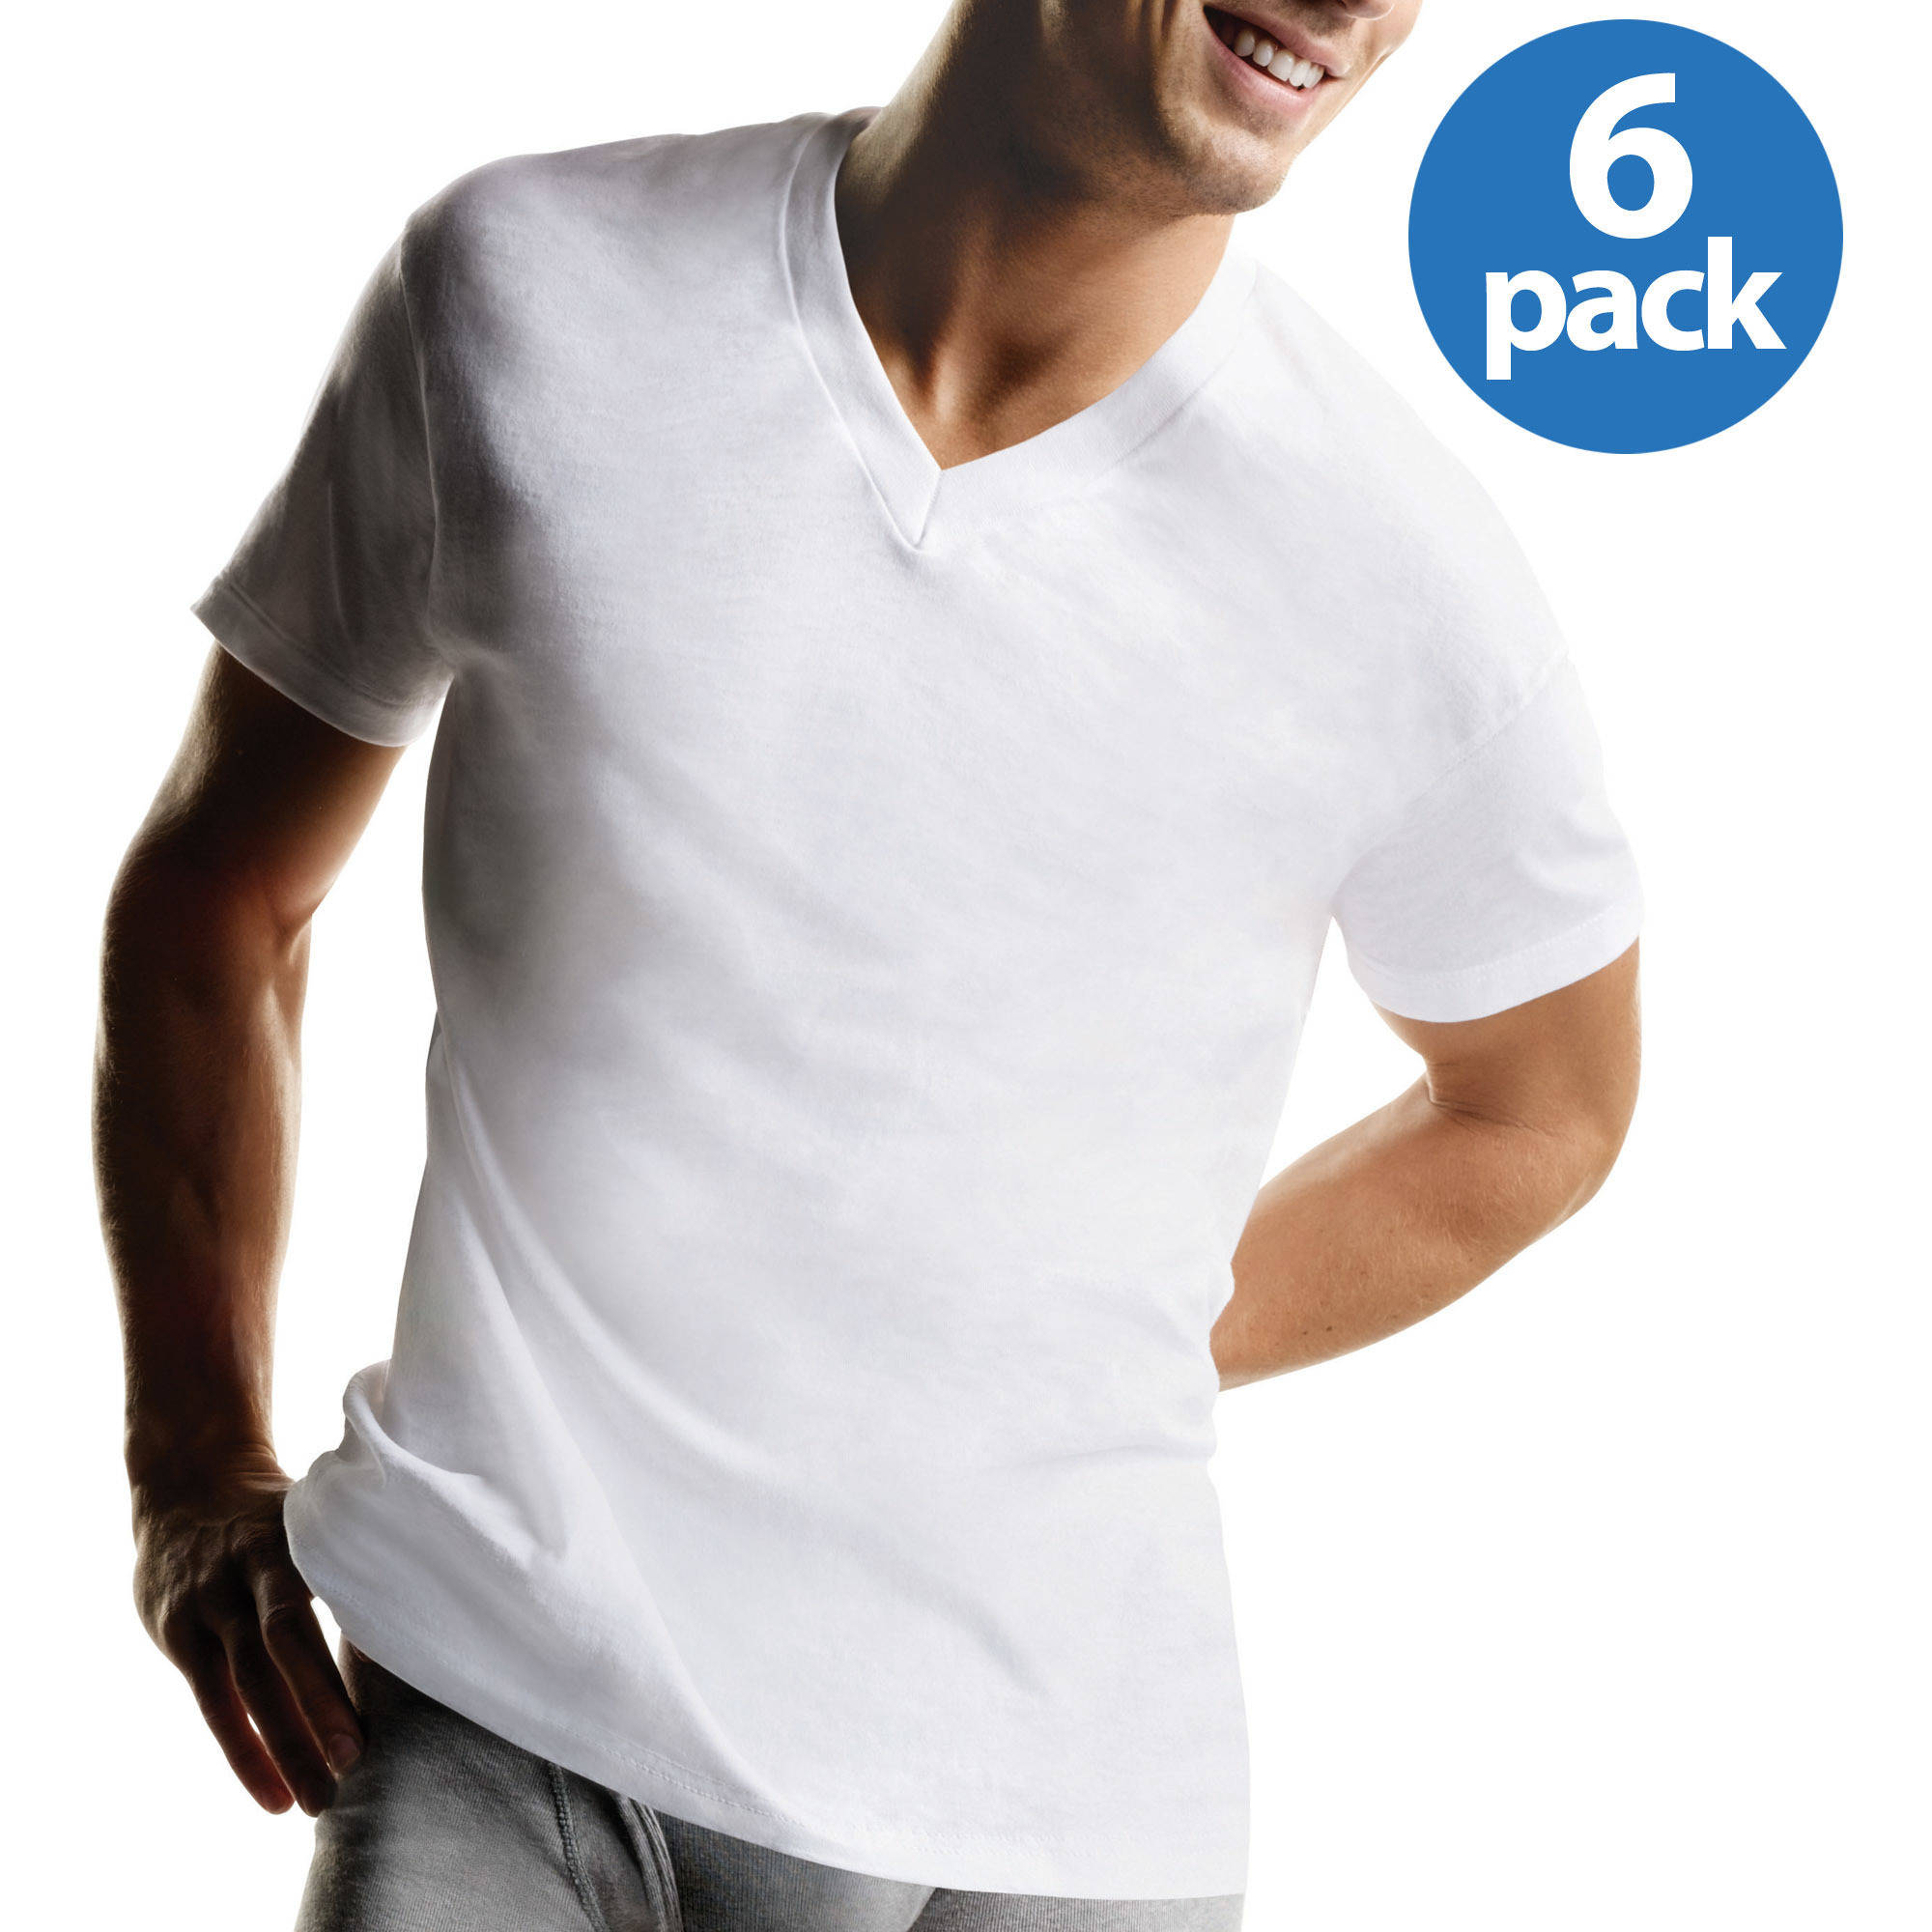 Hanes Men's FreshIQ ComfortSoft White V-Neck T-Shirt 6-Pack